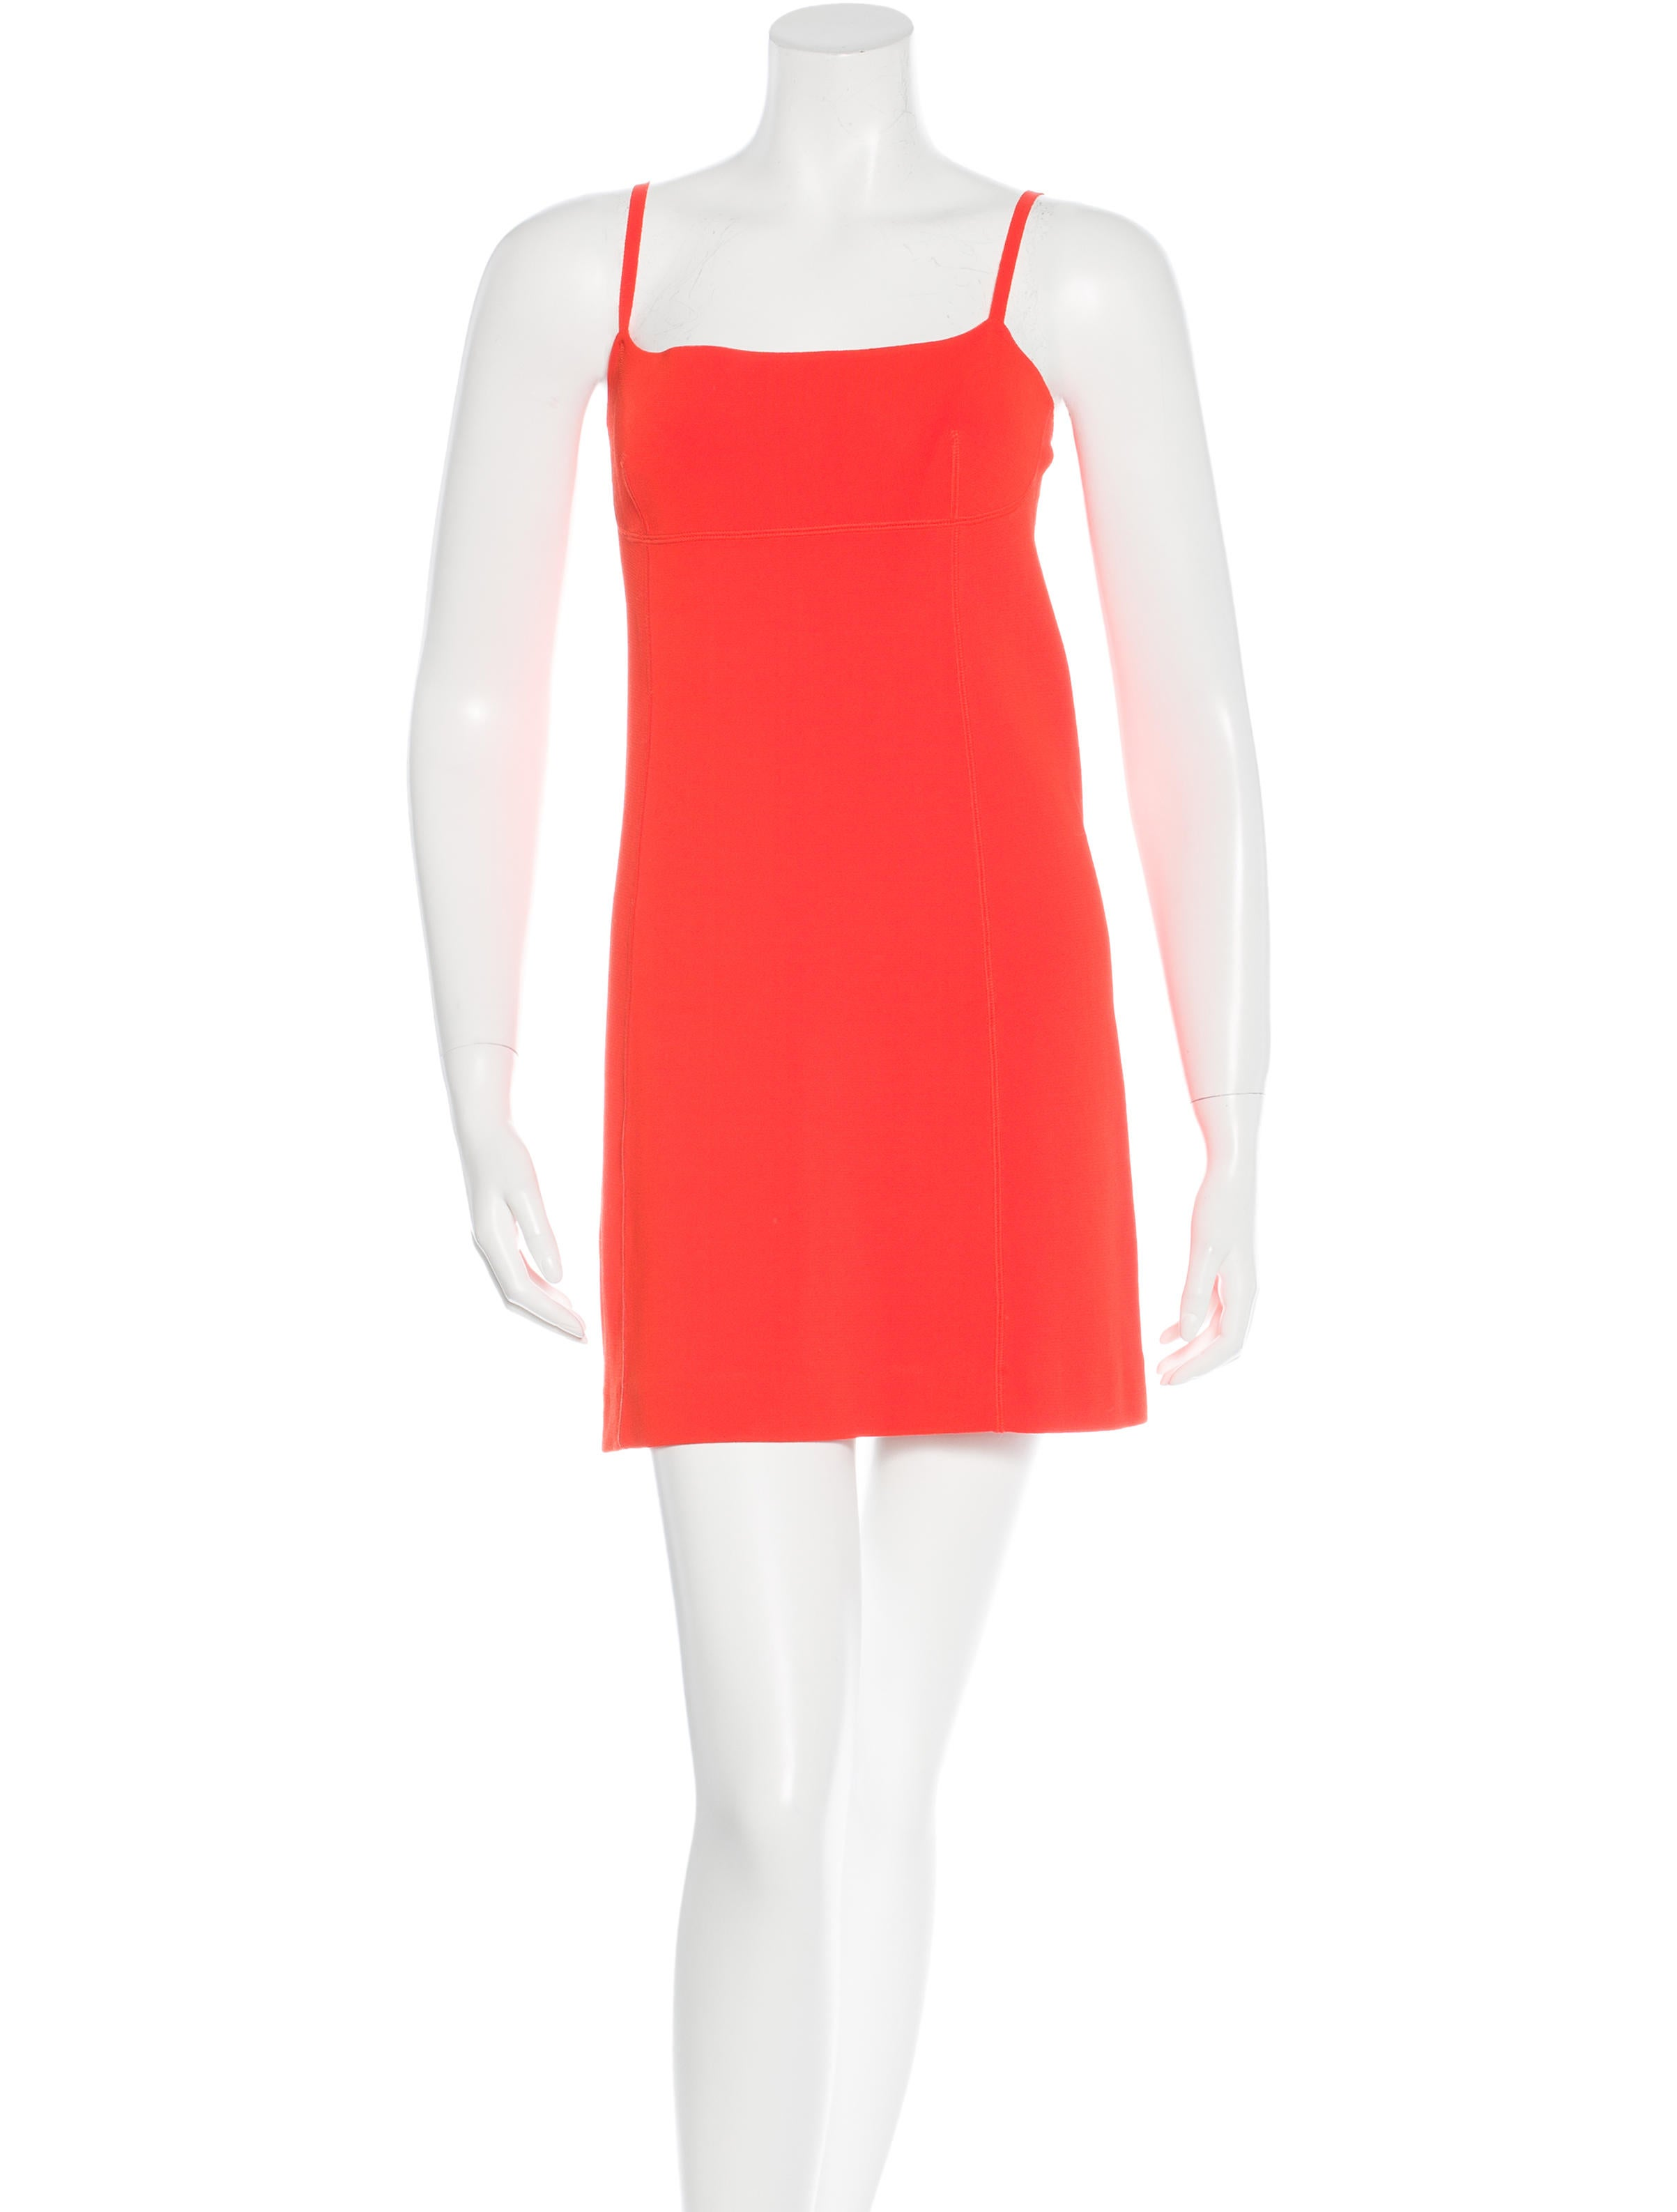 Gucci Sleeveless Dress Suit - Clothing - GUC107909 | The ...